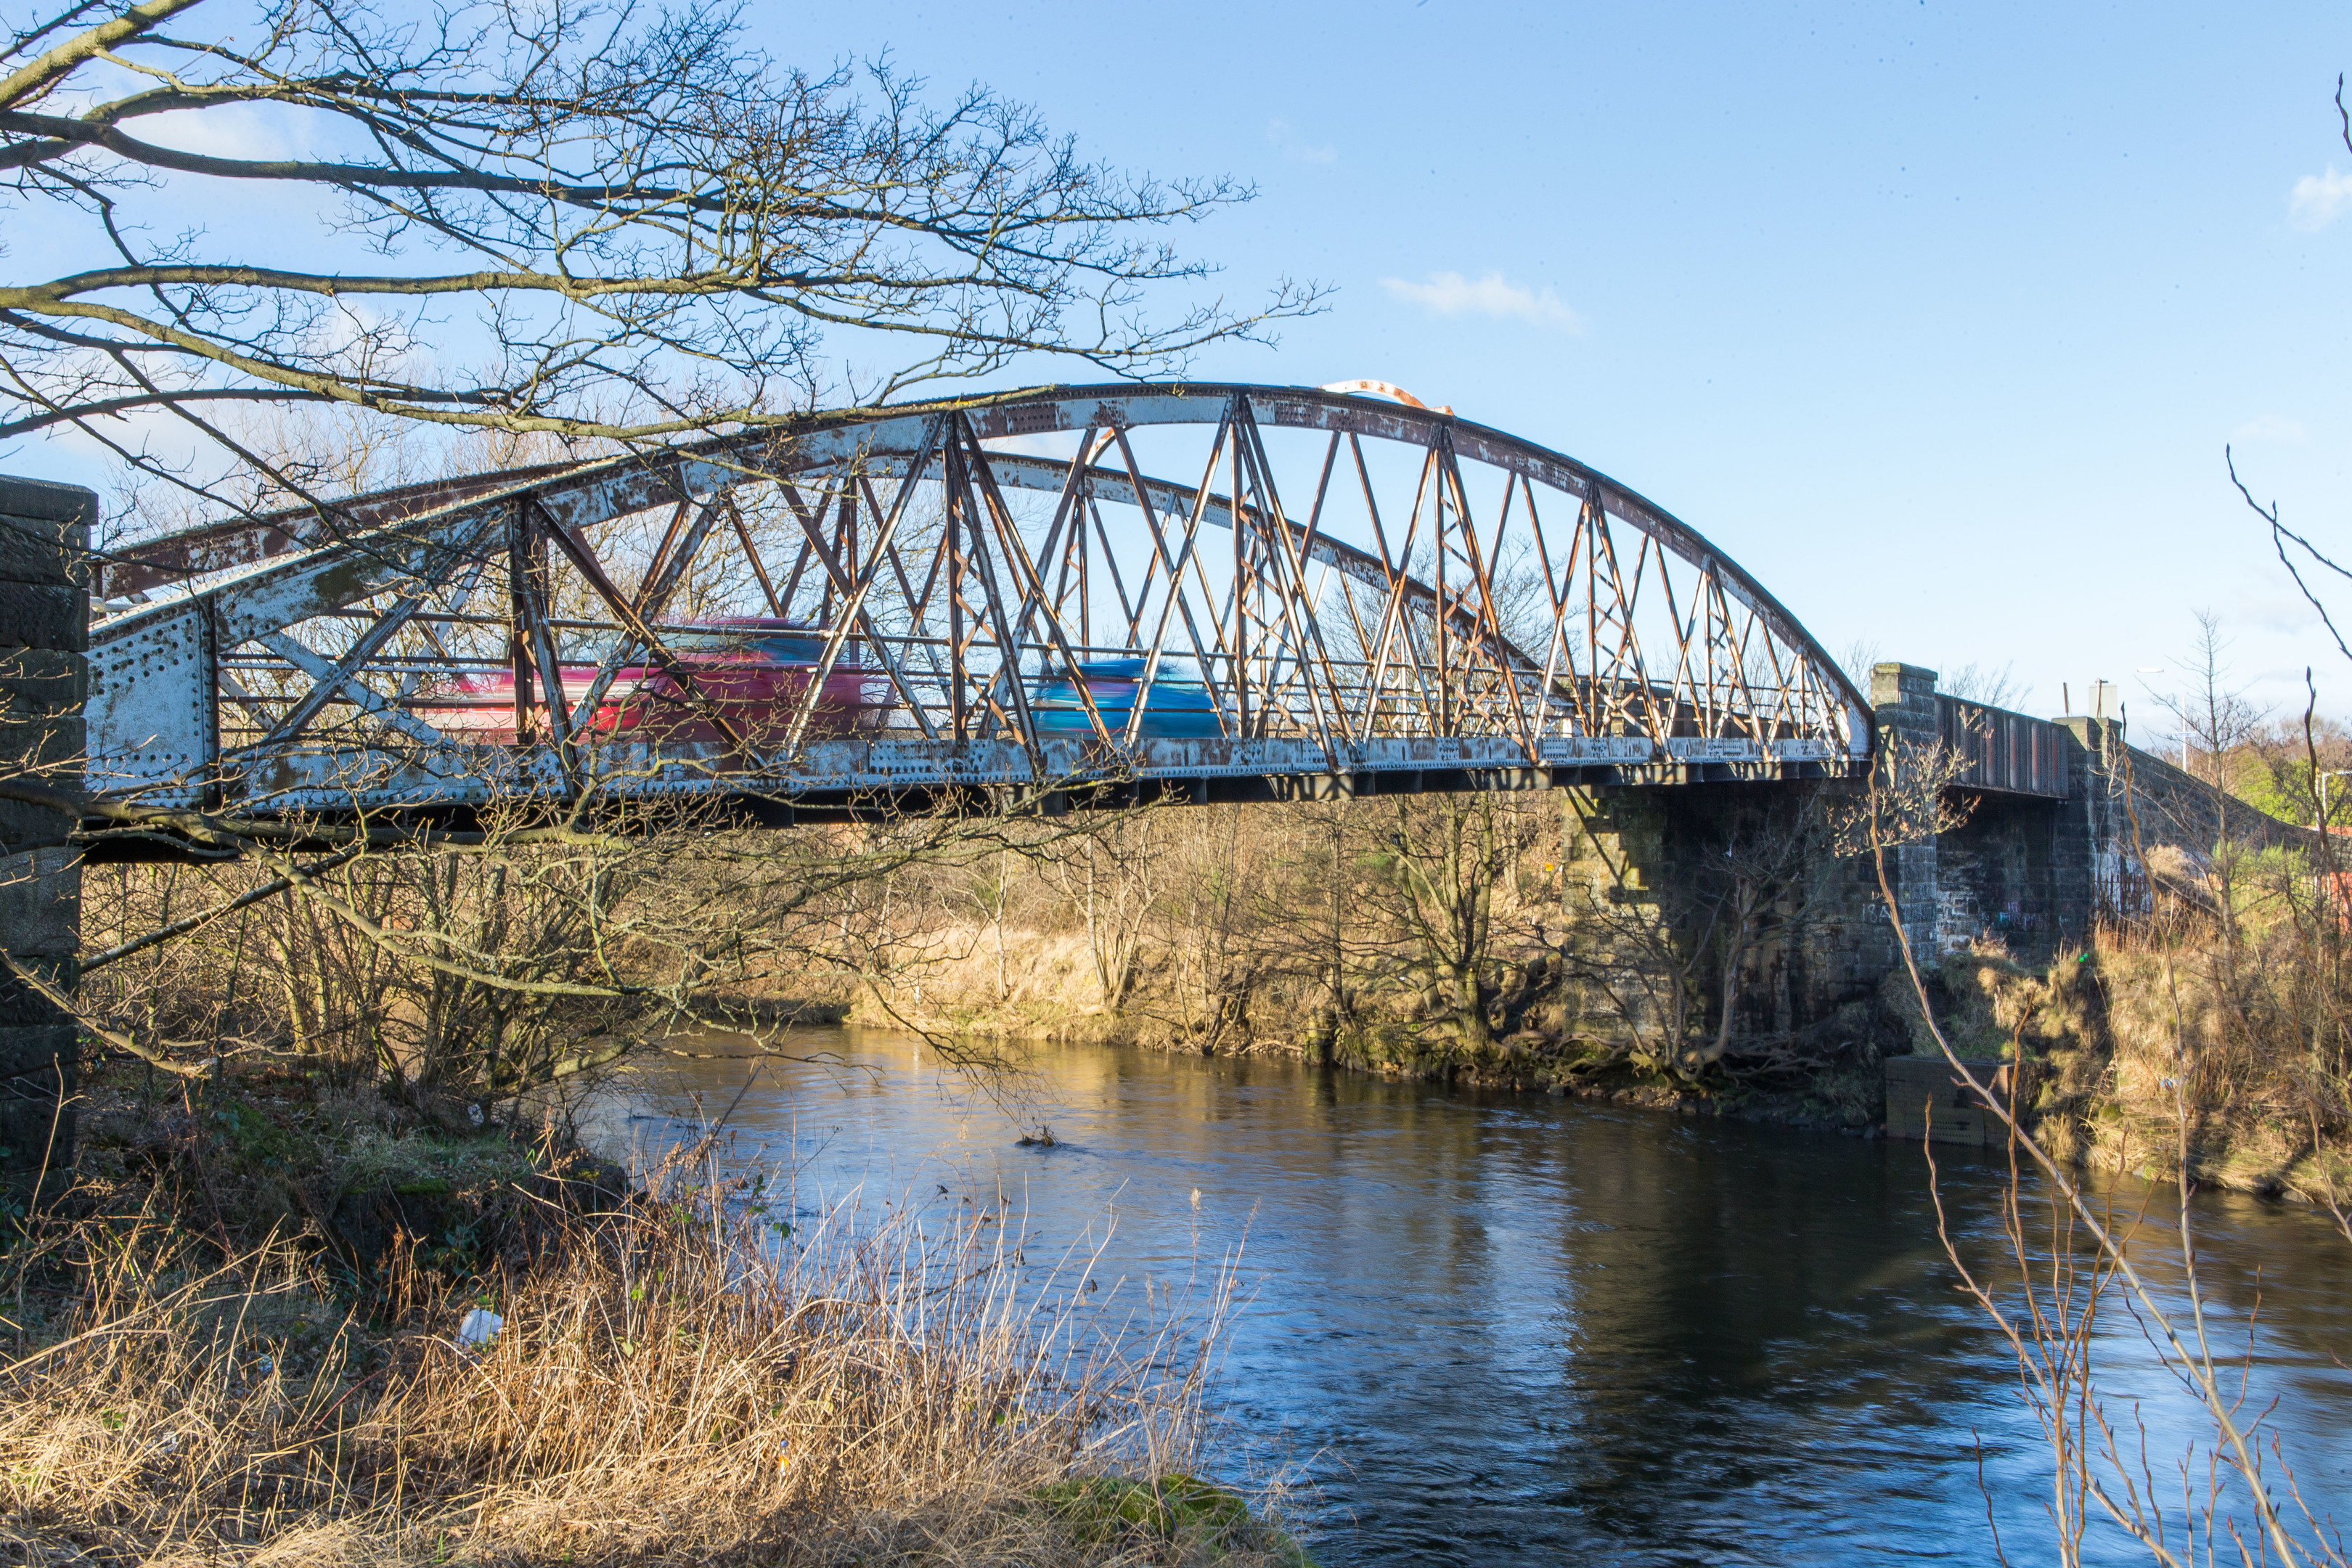 The Iron Brig in Leven is one of those earmarked for complete closure by Fife Council.